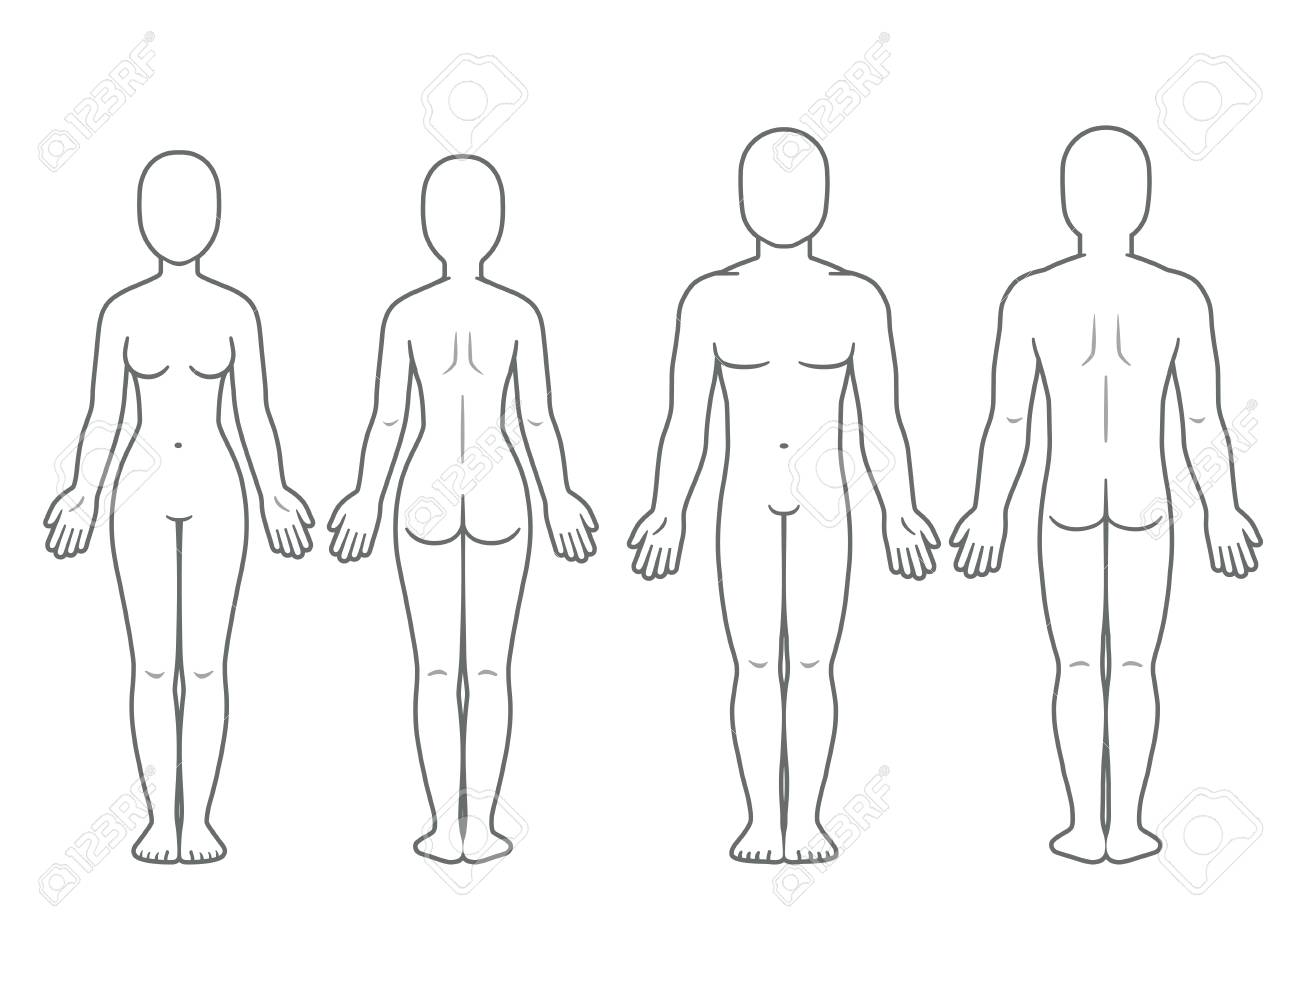 Male and female body front and back view. Blank human body template for medical infographic. Isolated vector illustration. - 95218807